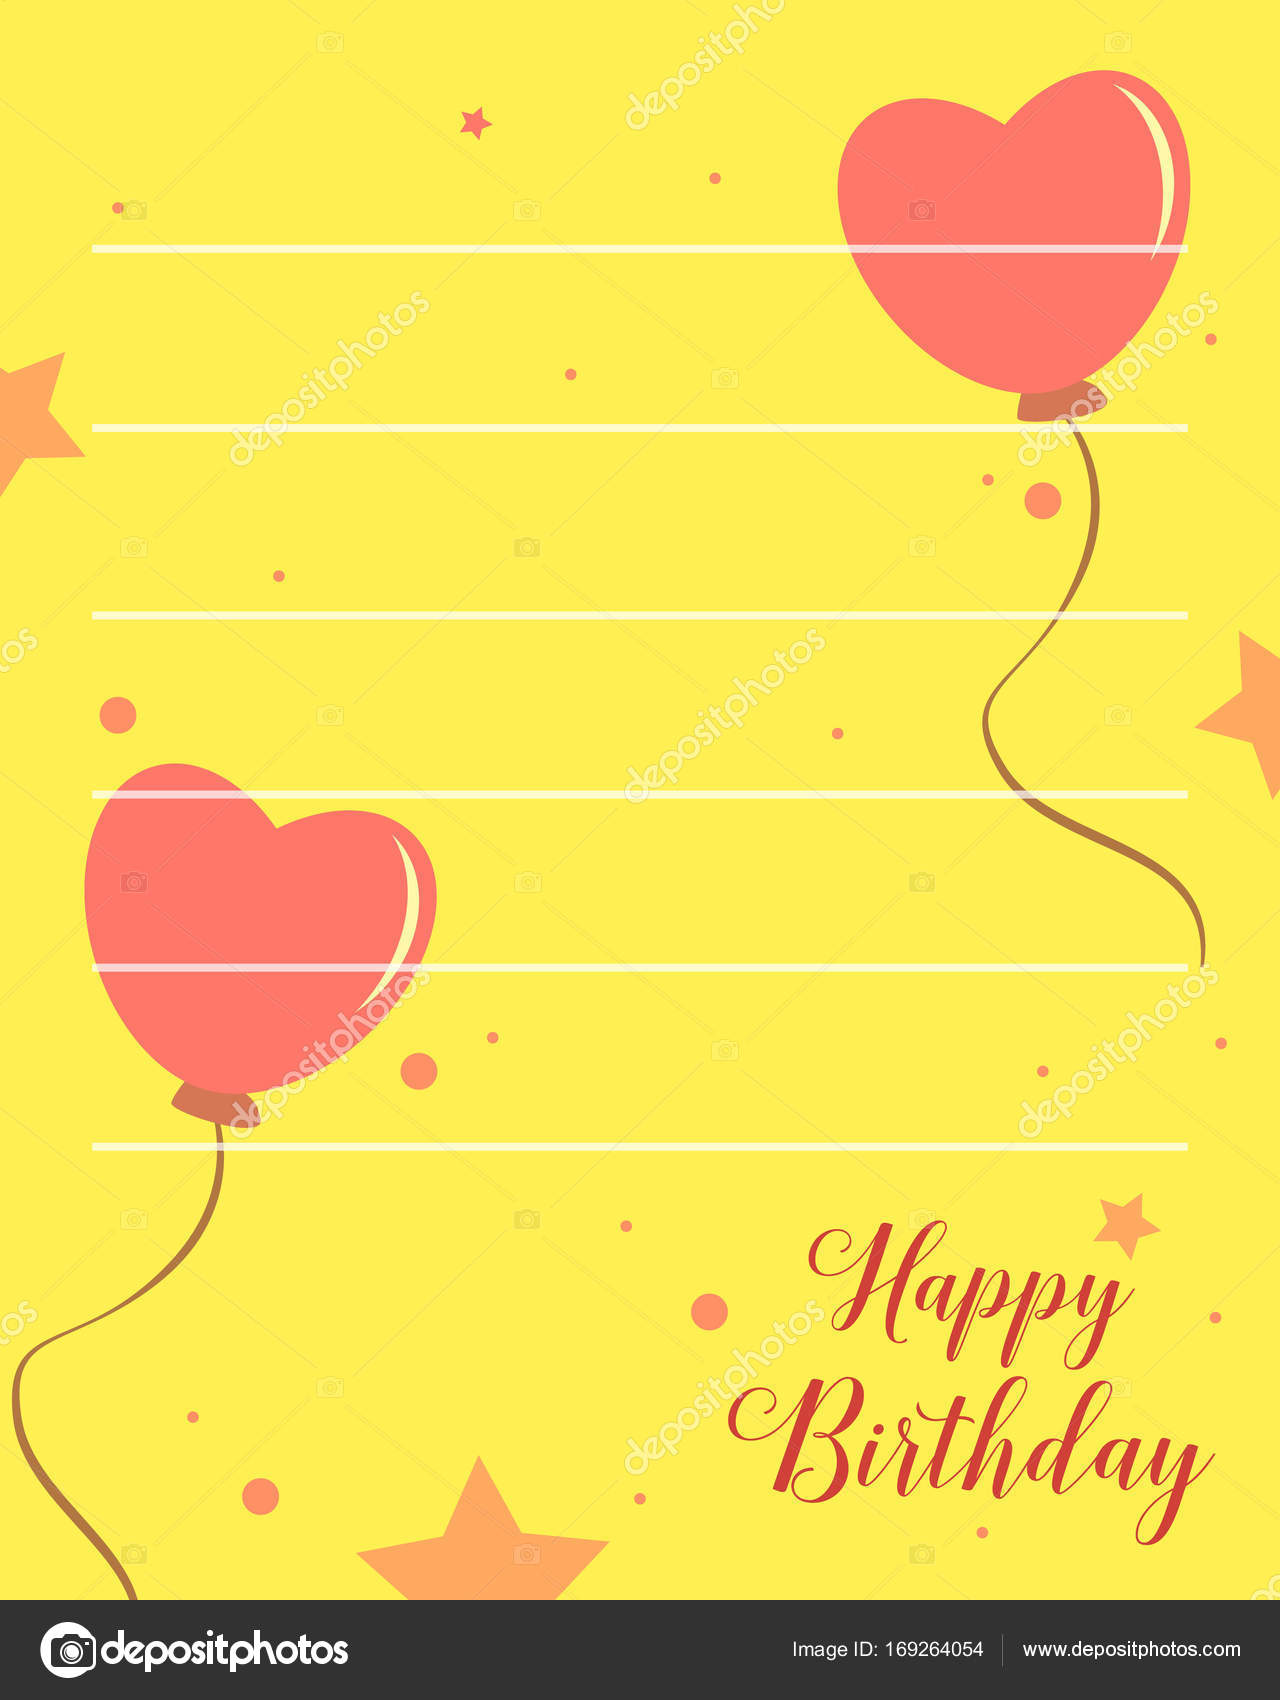 Happy Birthday Greeting Card With Yellow Background Stock Vector